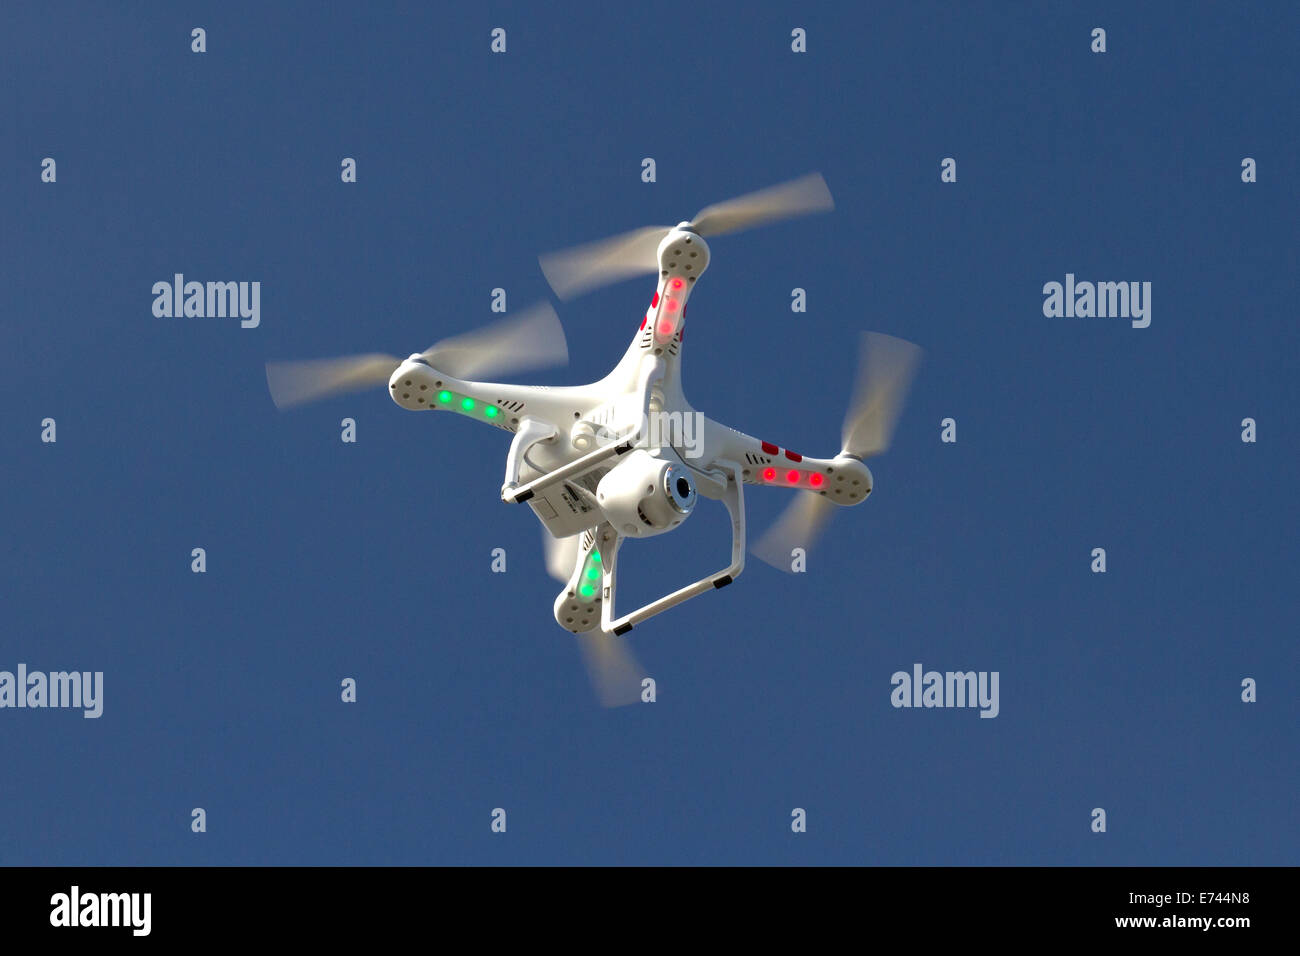 small unmanned helicopter with a camera floating in the blue sky - Stock Image